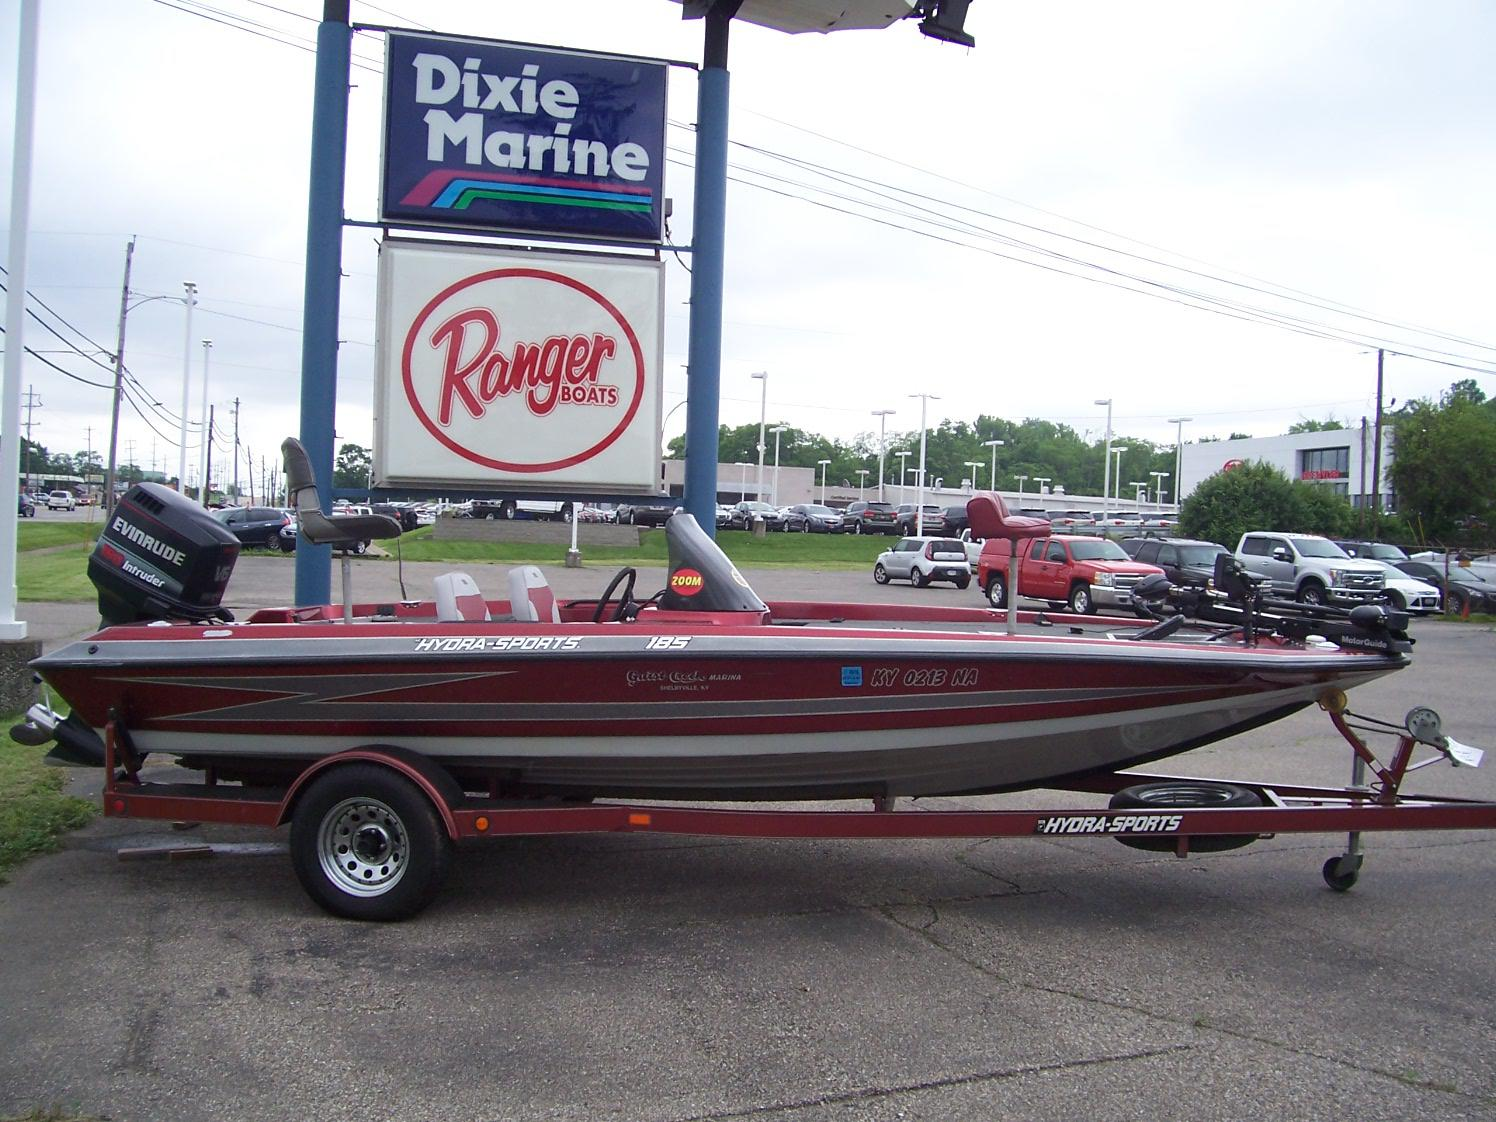 Dixie Marine boats for sale - boats.com